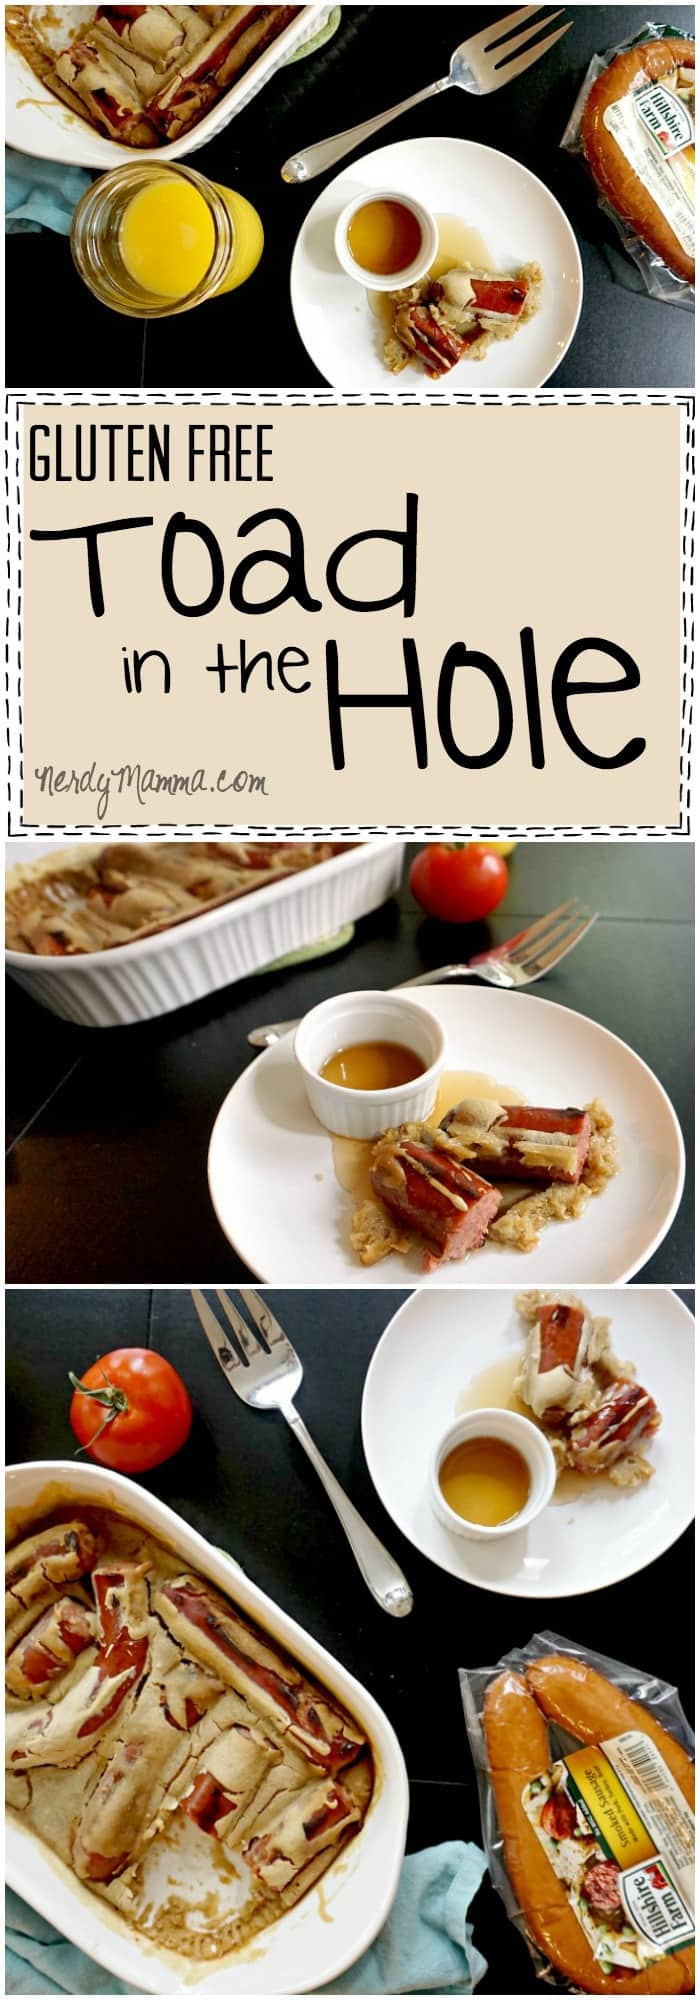 I absolutely love this recipe for gluten-free toad in the hole...i mean, it's basically just sausage and [pancake baked...but what a great idea!